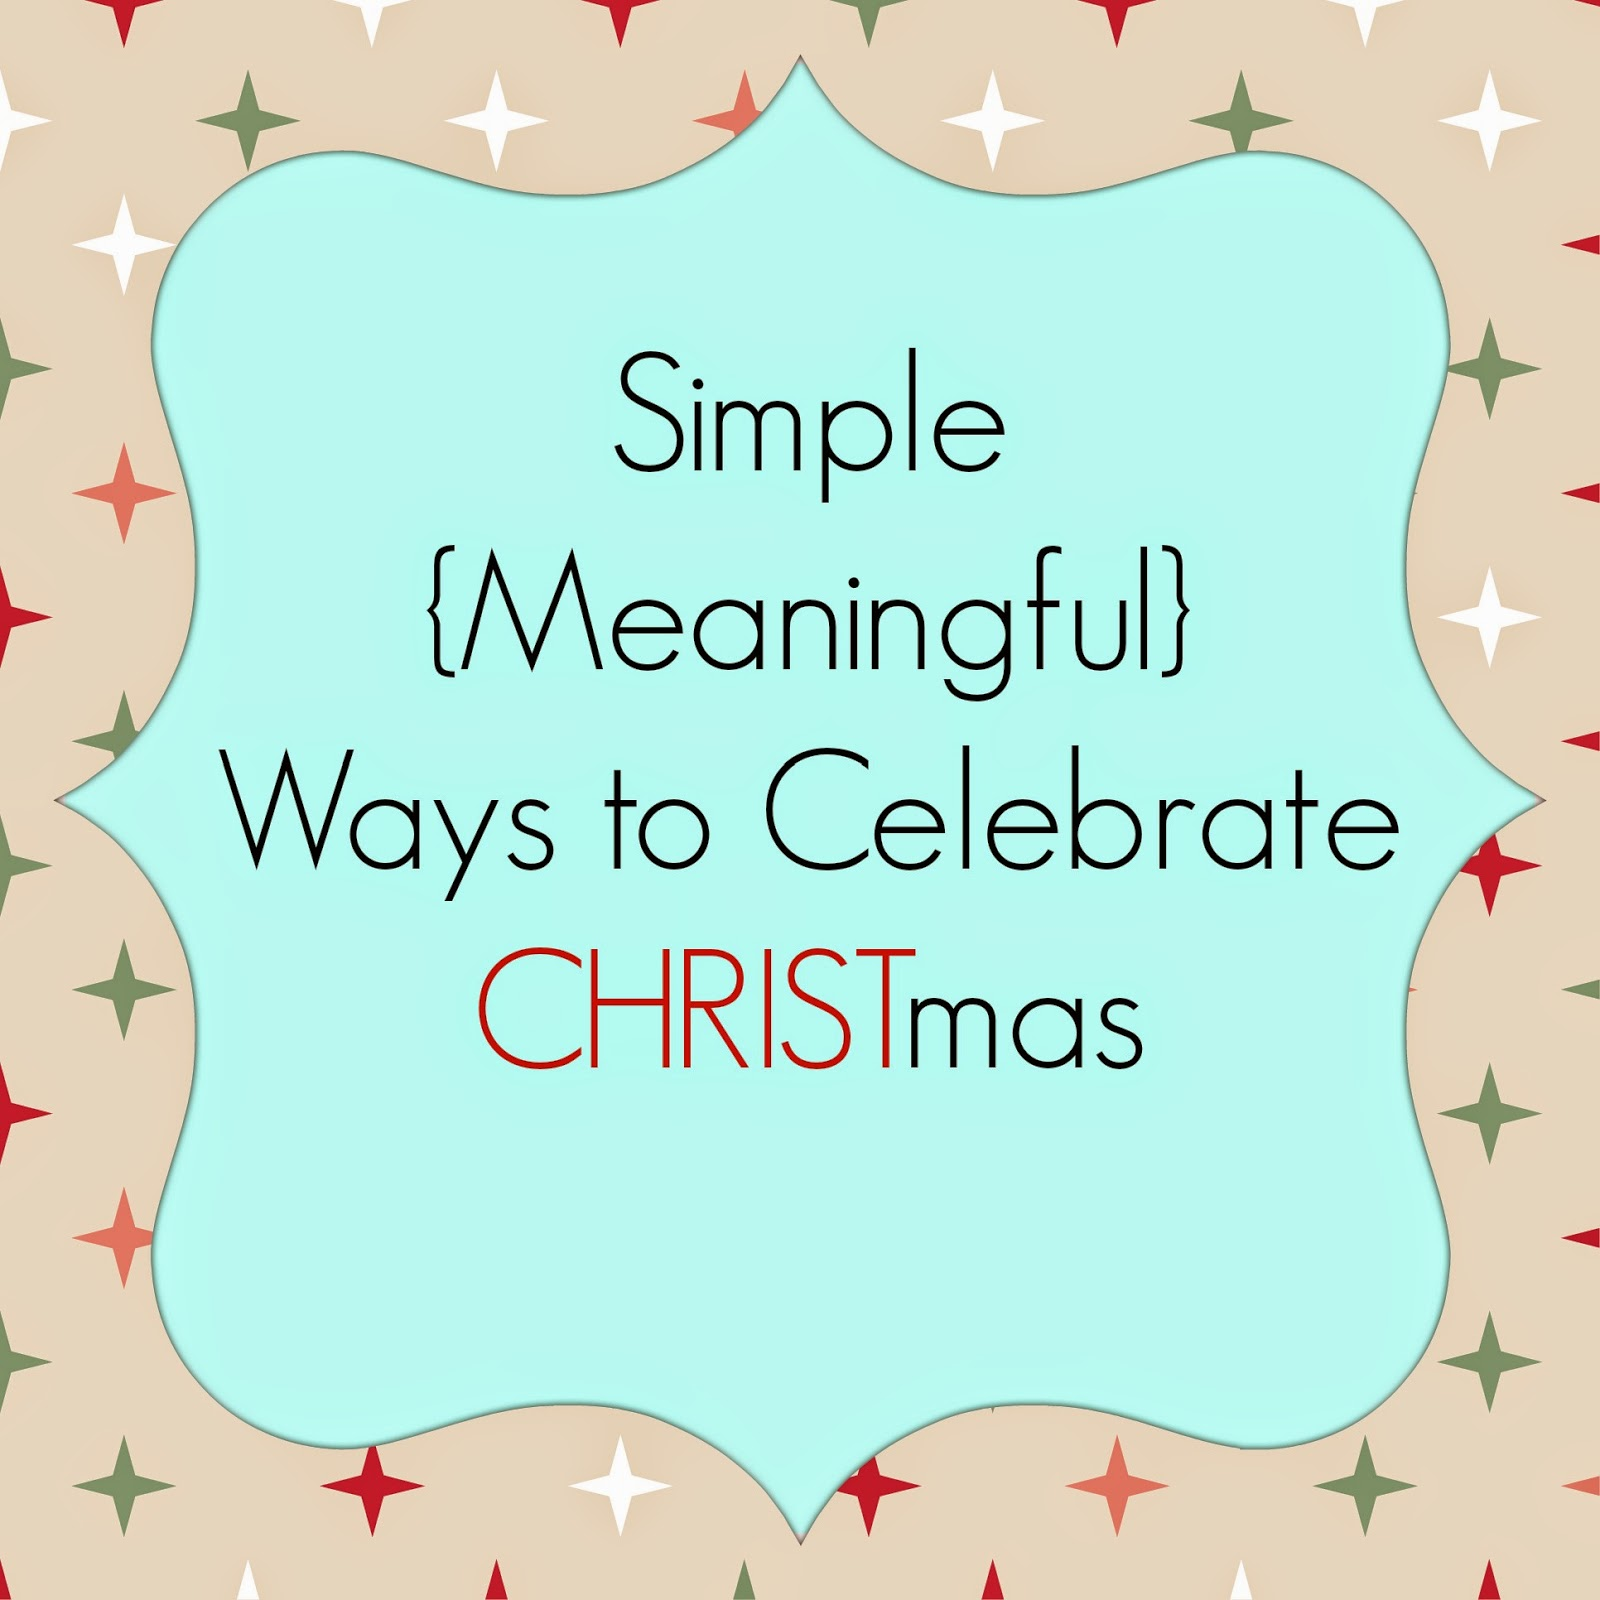 Simple {Meaningful} Ways to Celebrate CHRISTmas ...